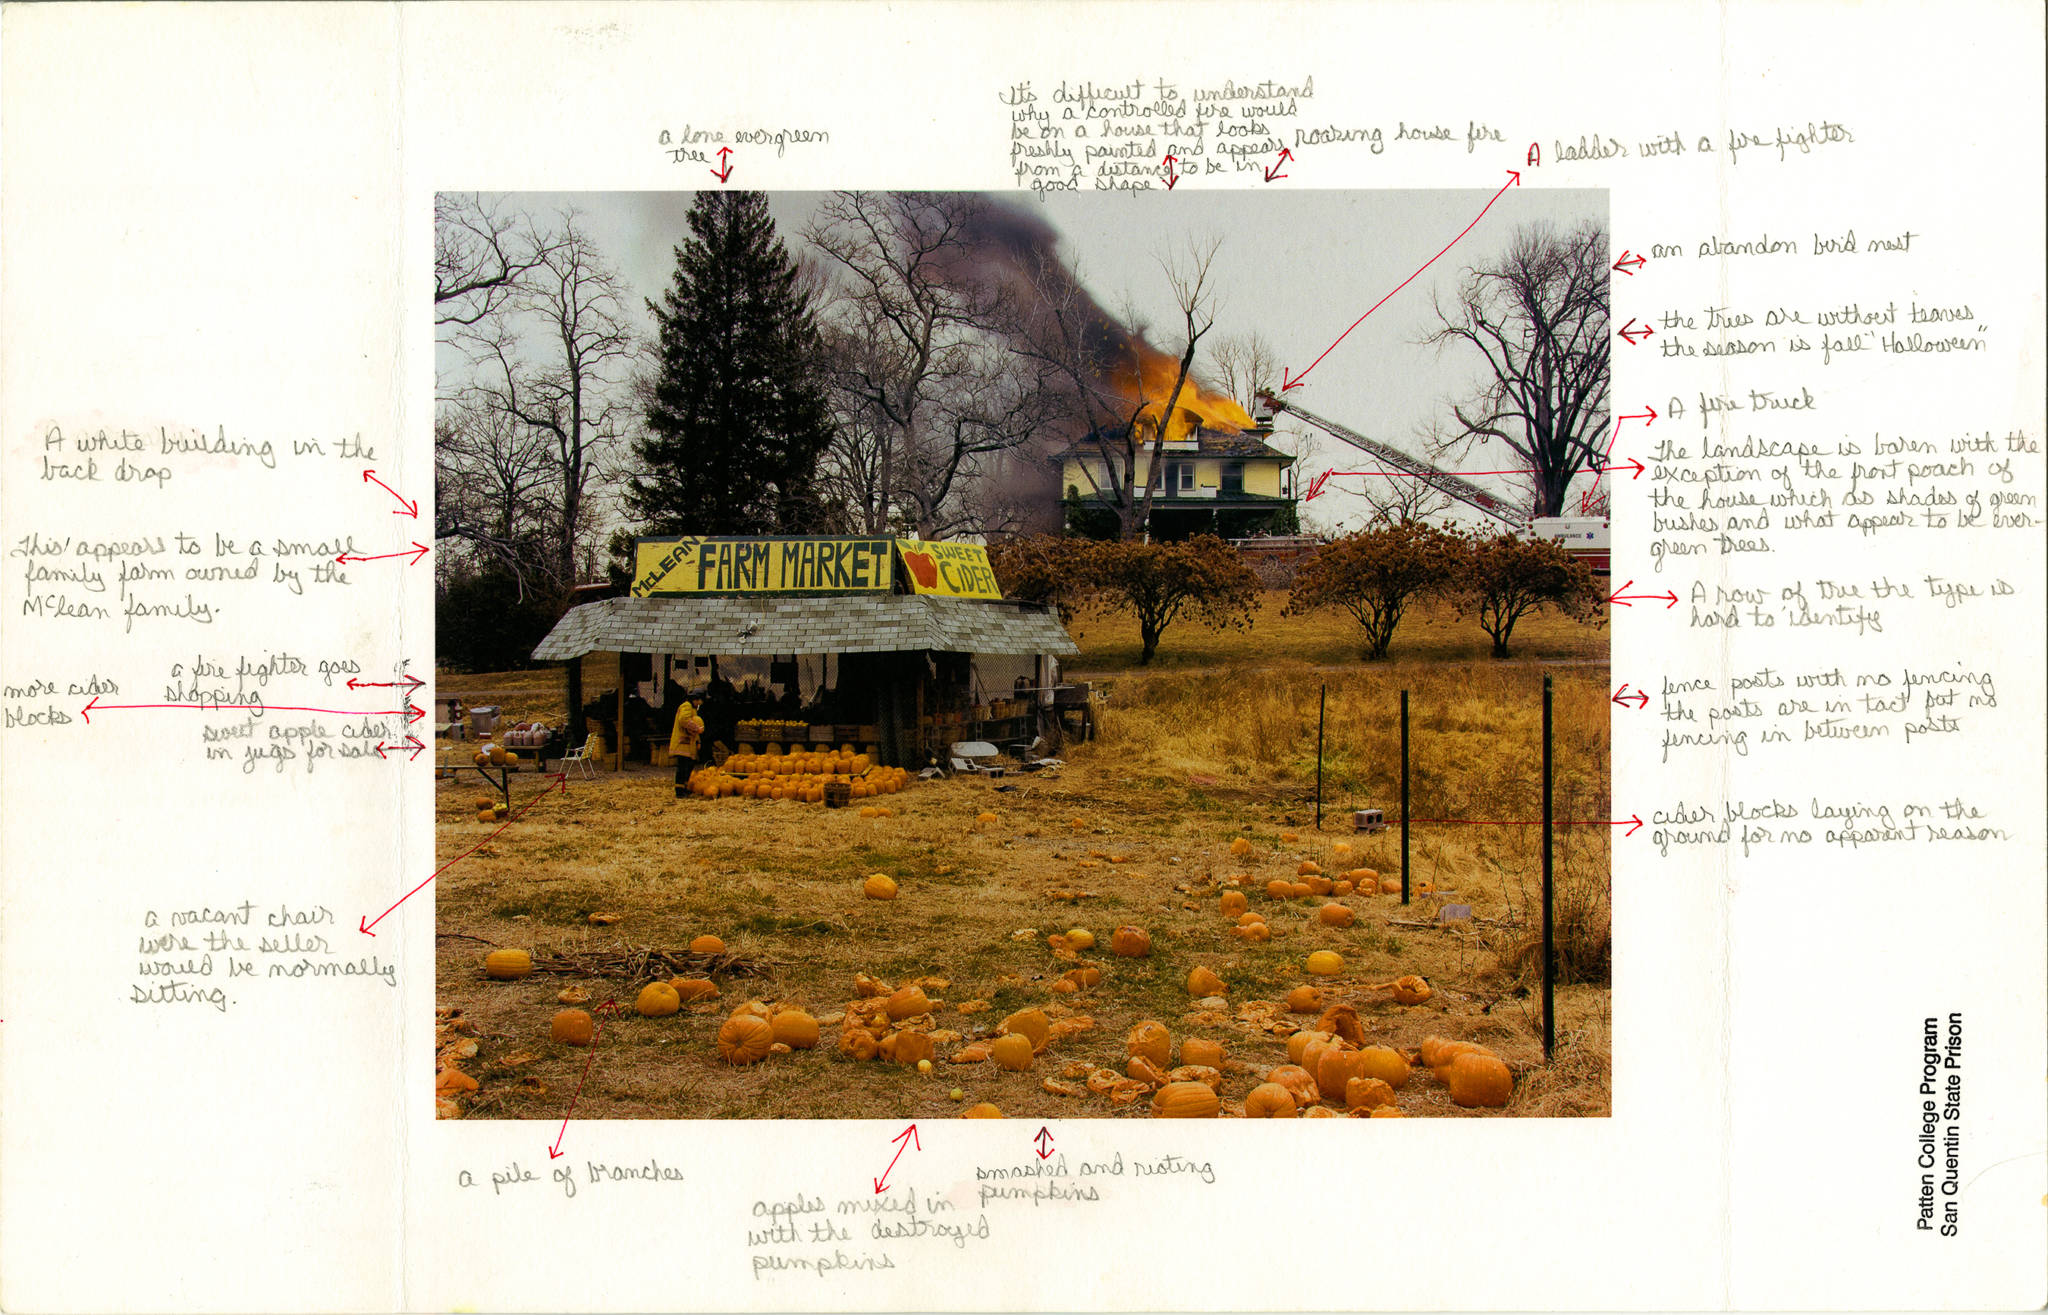 Nigel Poor and Frankie Smith, 'Mapping Joel Sternfeld, side A,' 2011/12. Inkjet print, with ink notations.